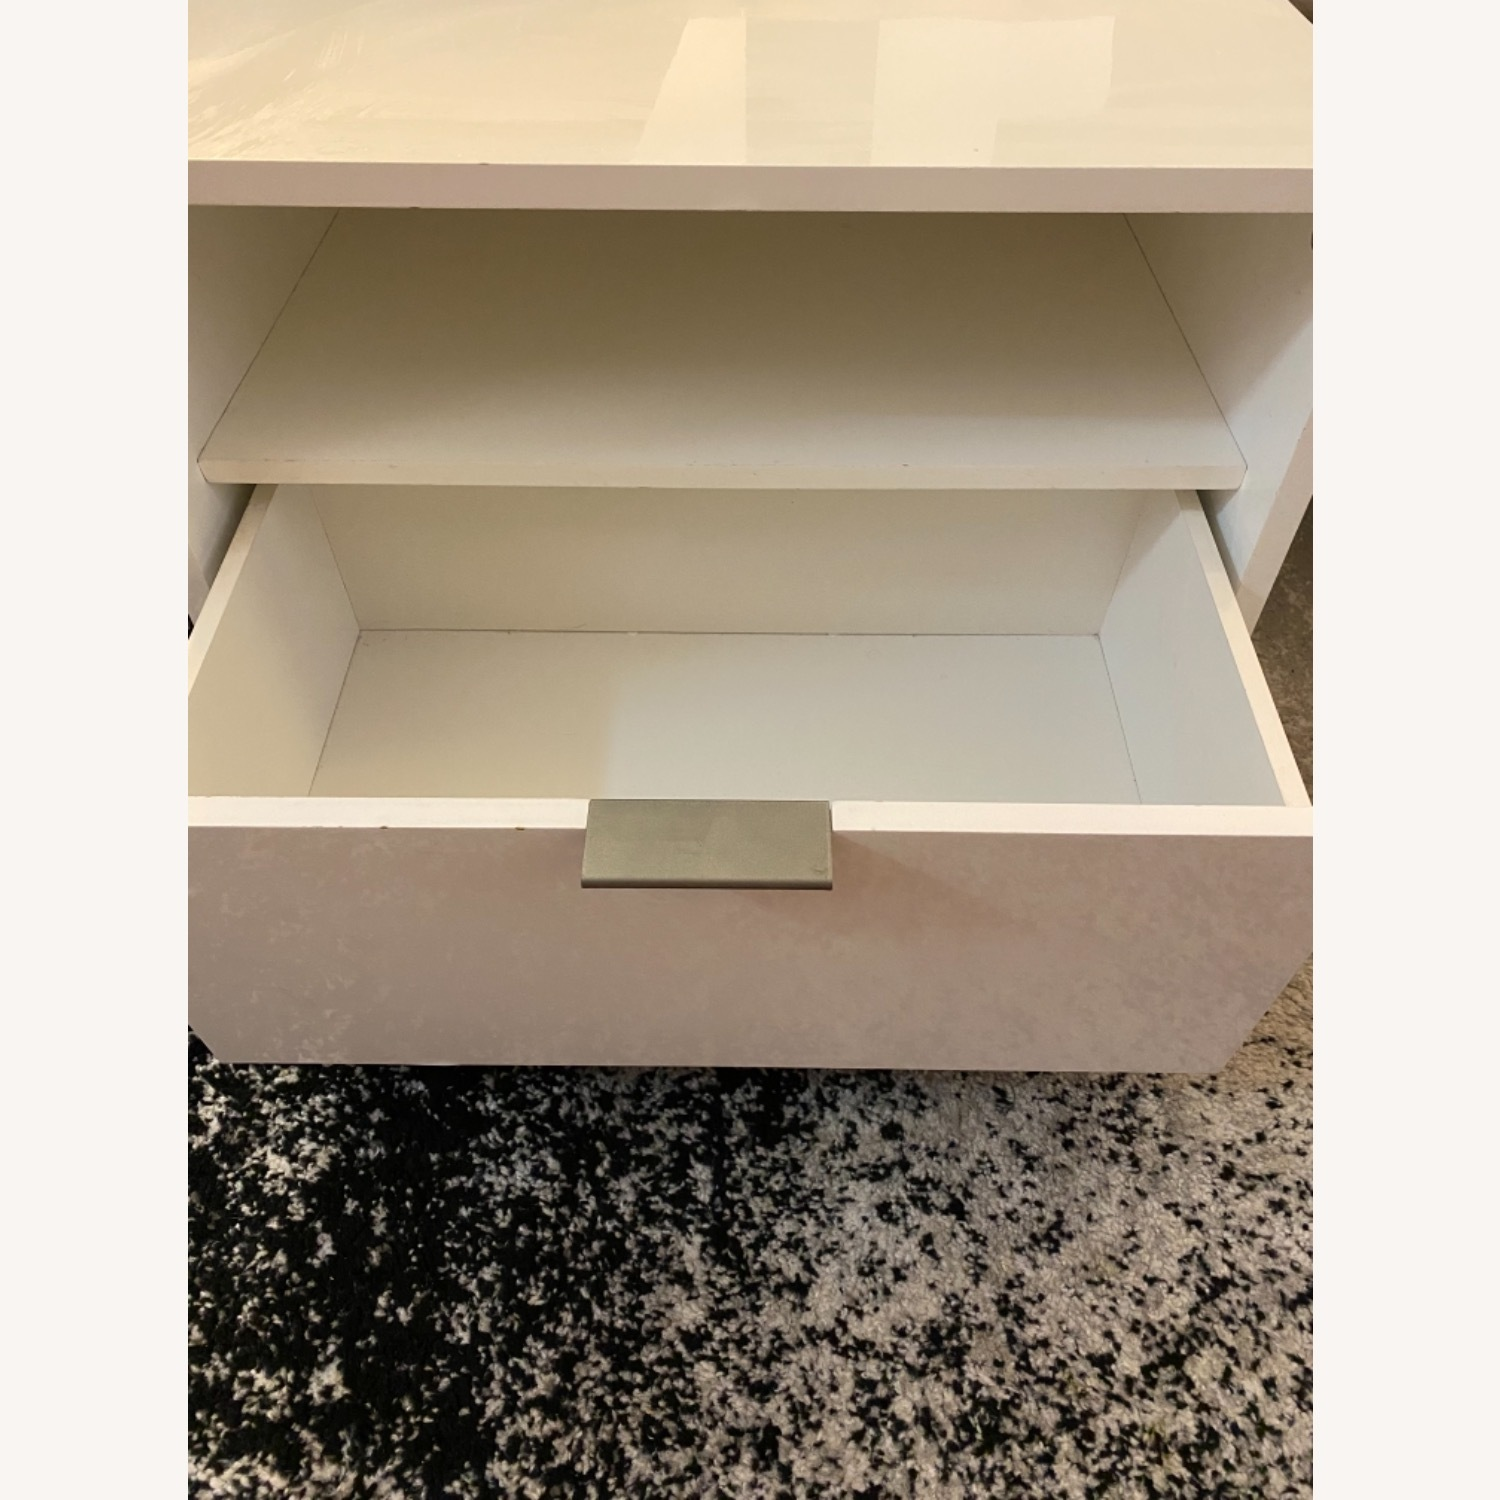 CB2 Matchbox Nightstand in White Lacquer - image-9